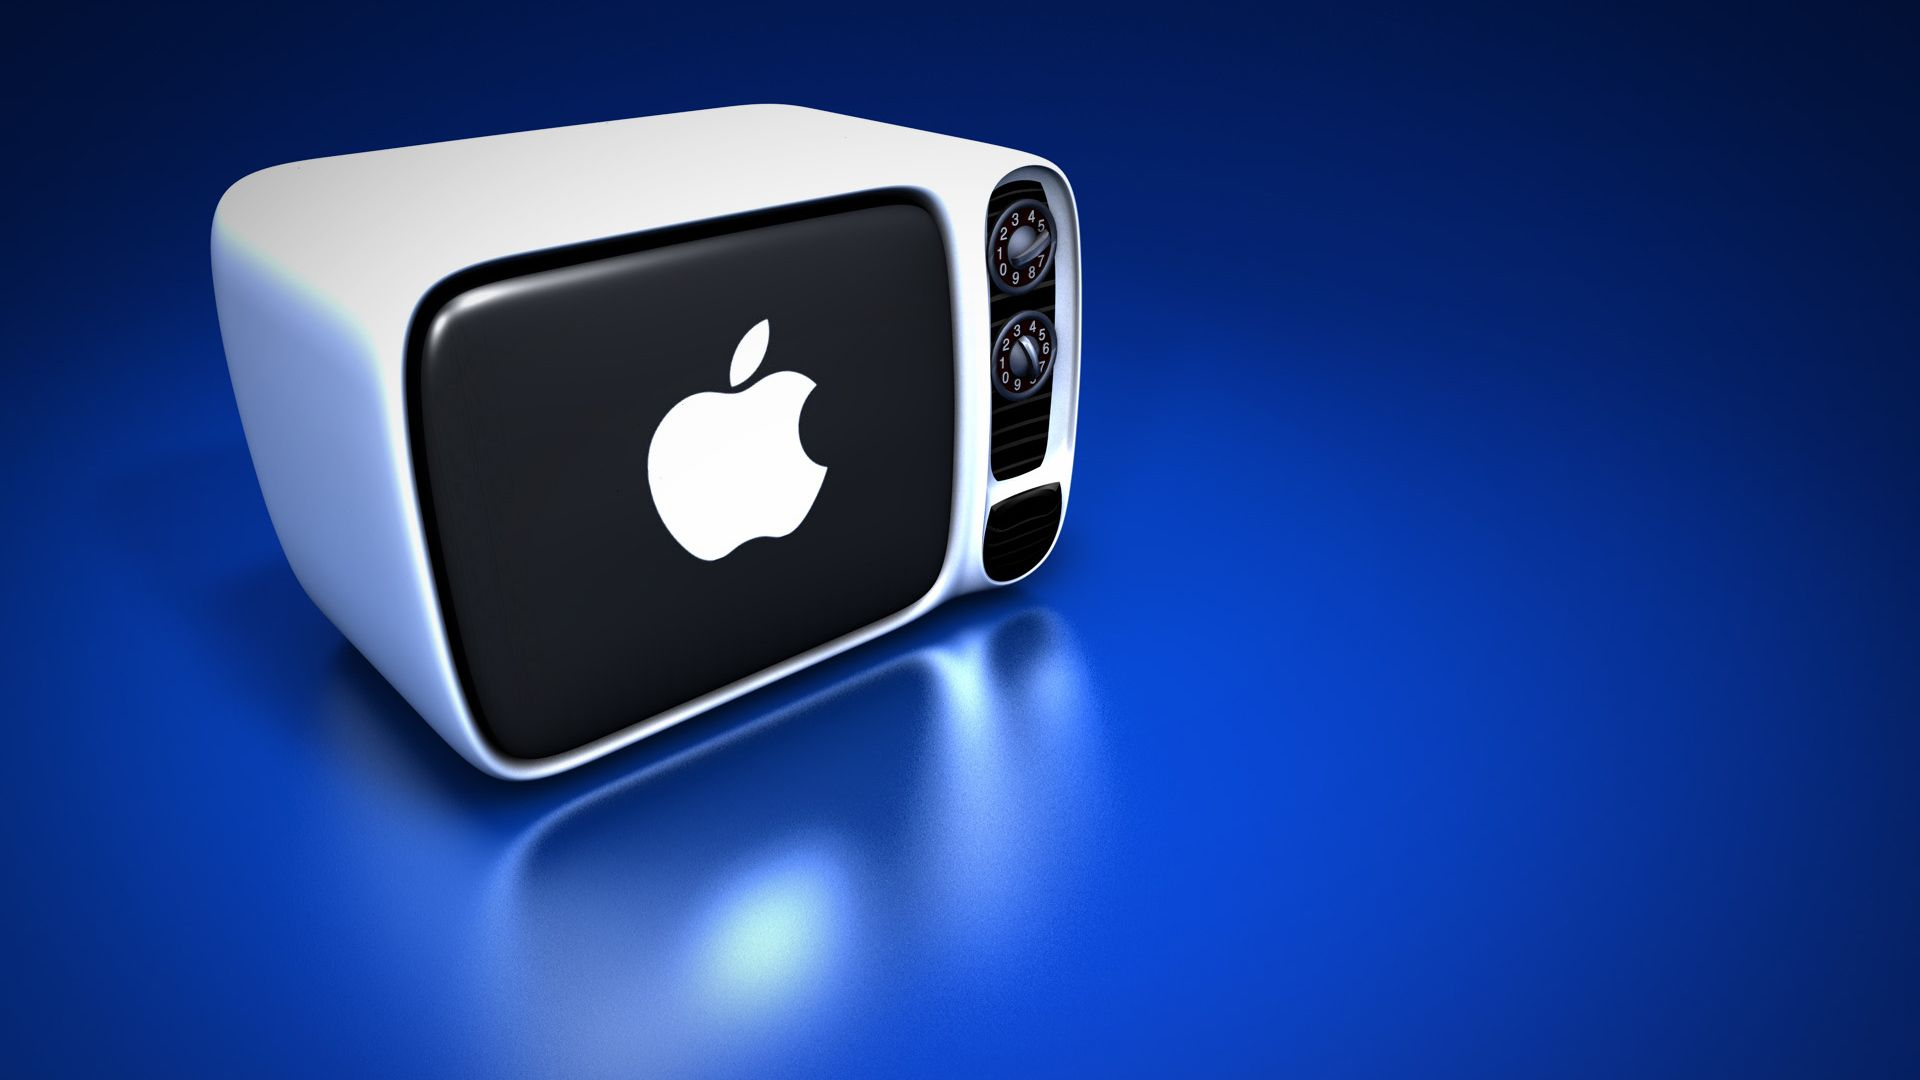 Apple Tv Wallpaper Free Wallpapers Pinterest